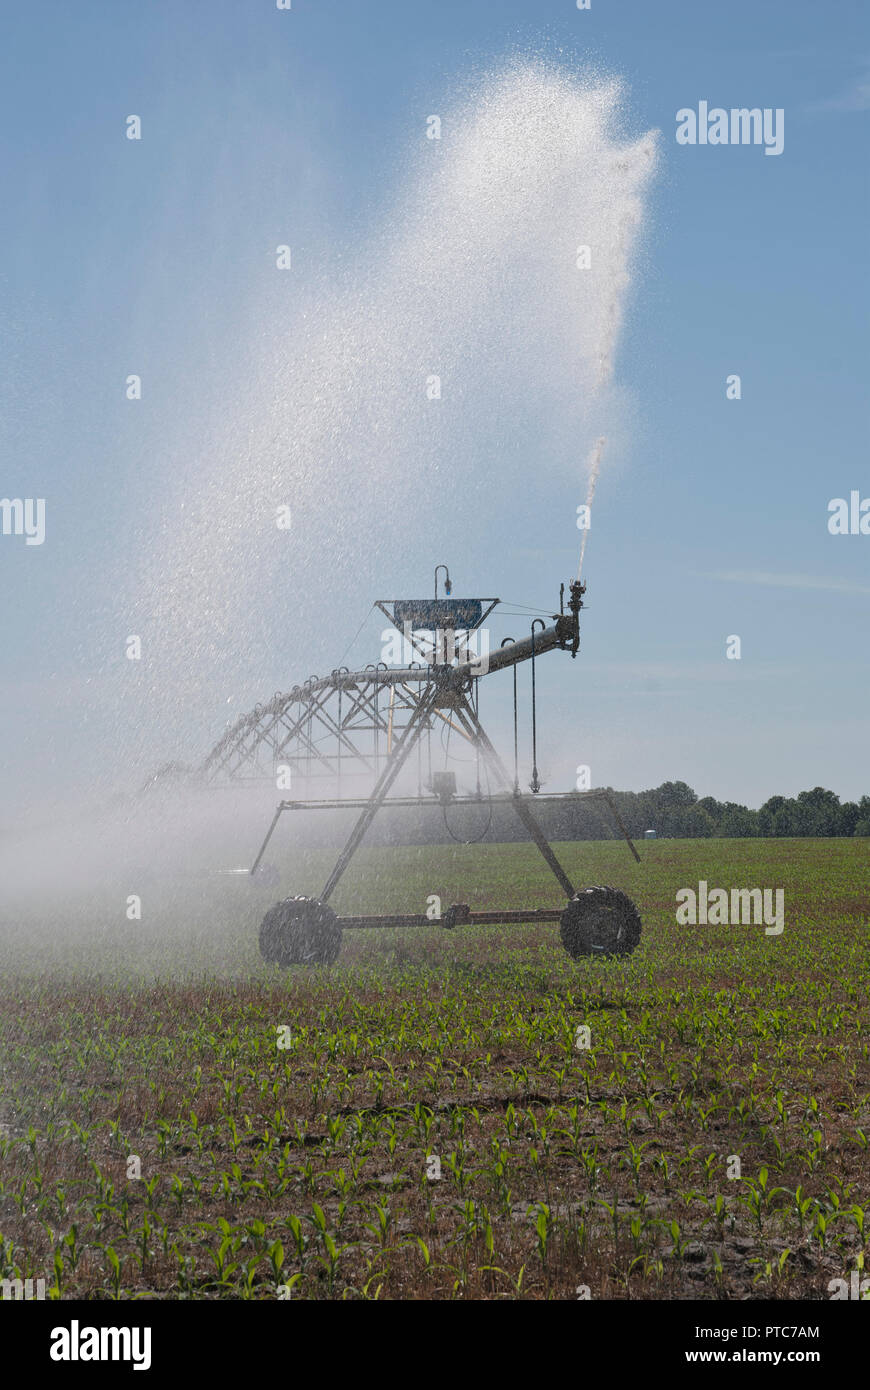 Center-pivot crop irrigation system distributes water to a corn crop in North Central Florida. - Stock Image